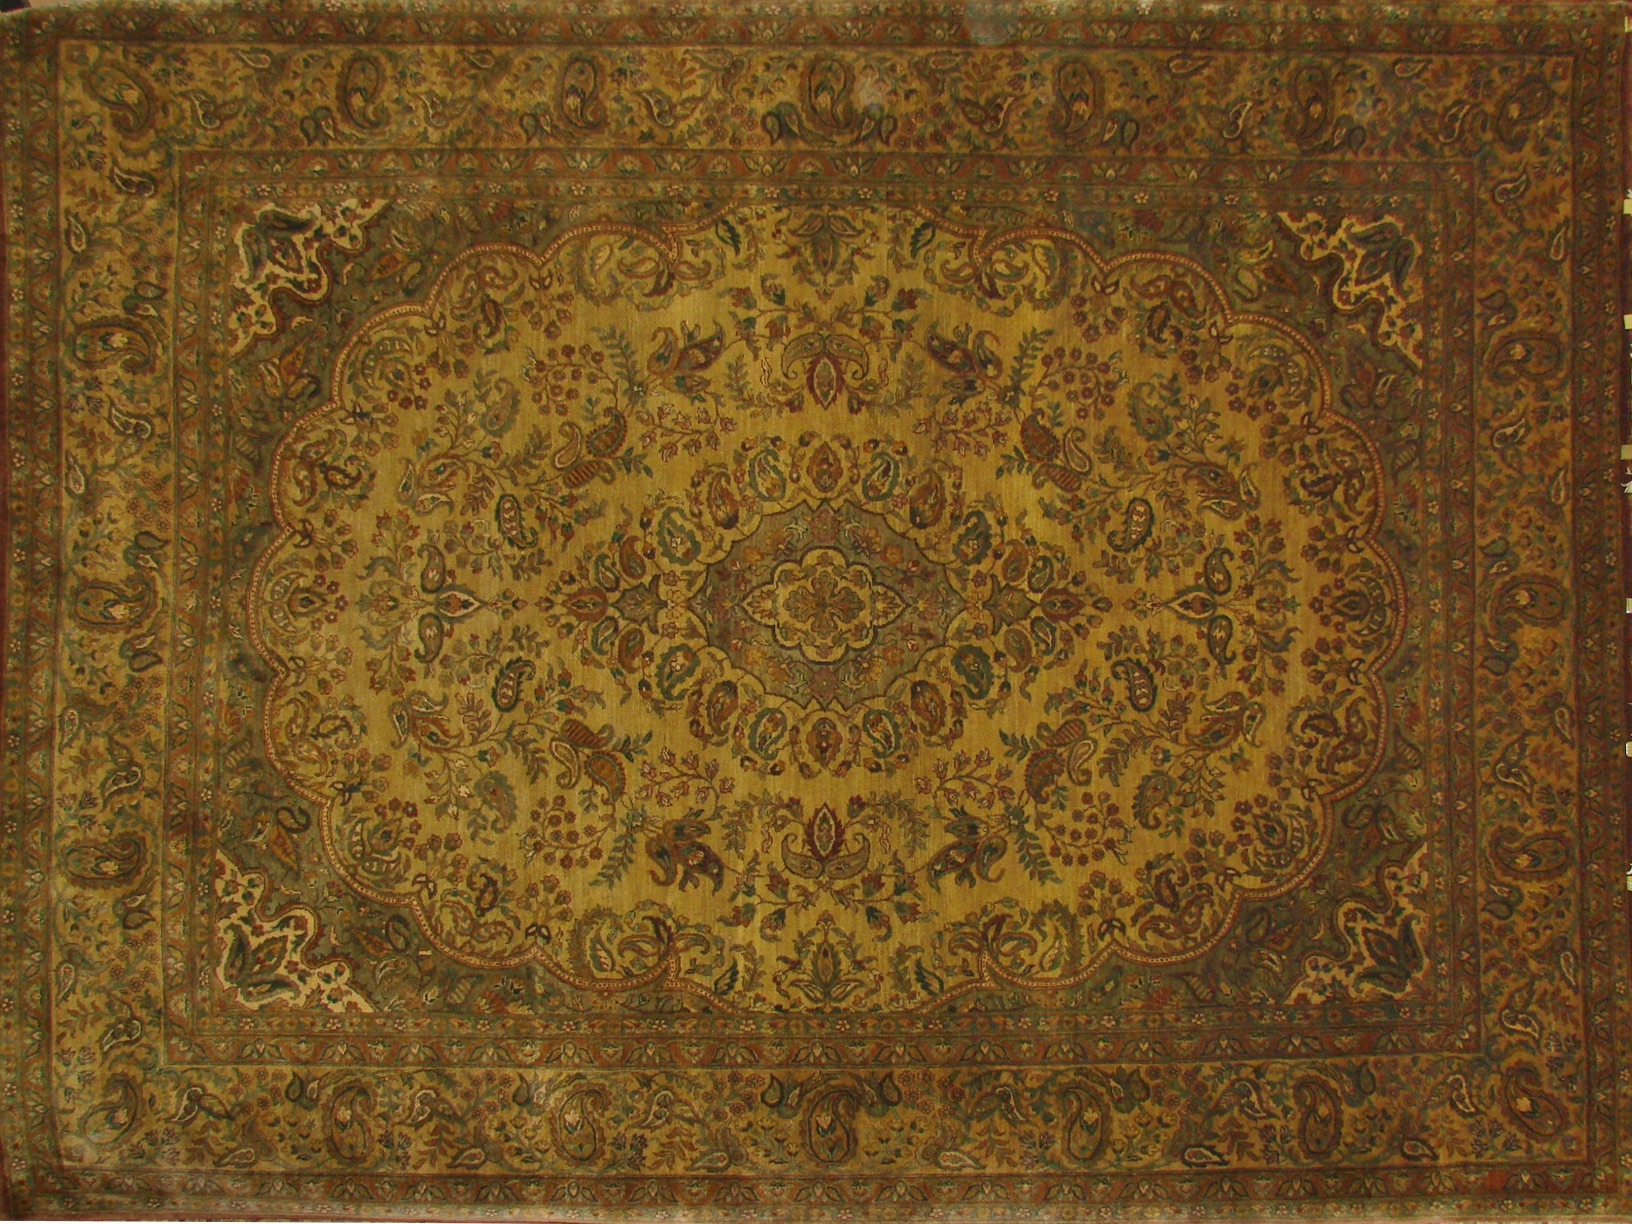 9x12 Jaipur Hand Knotted Wool Area Rug - MR0371